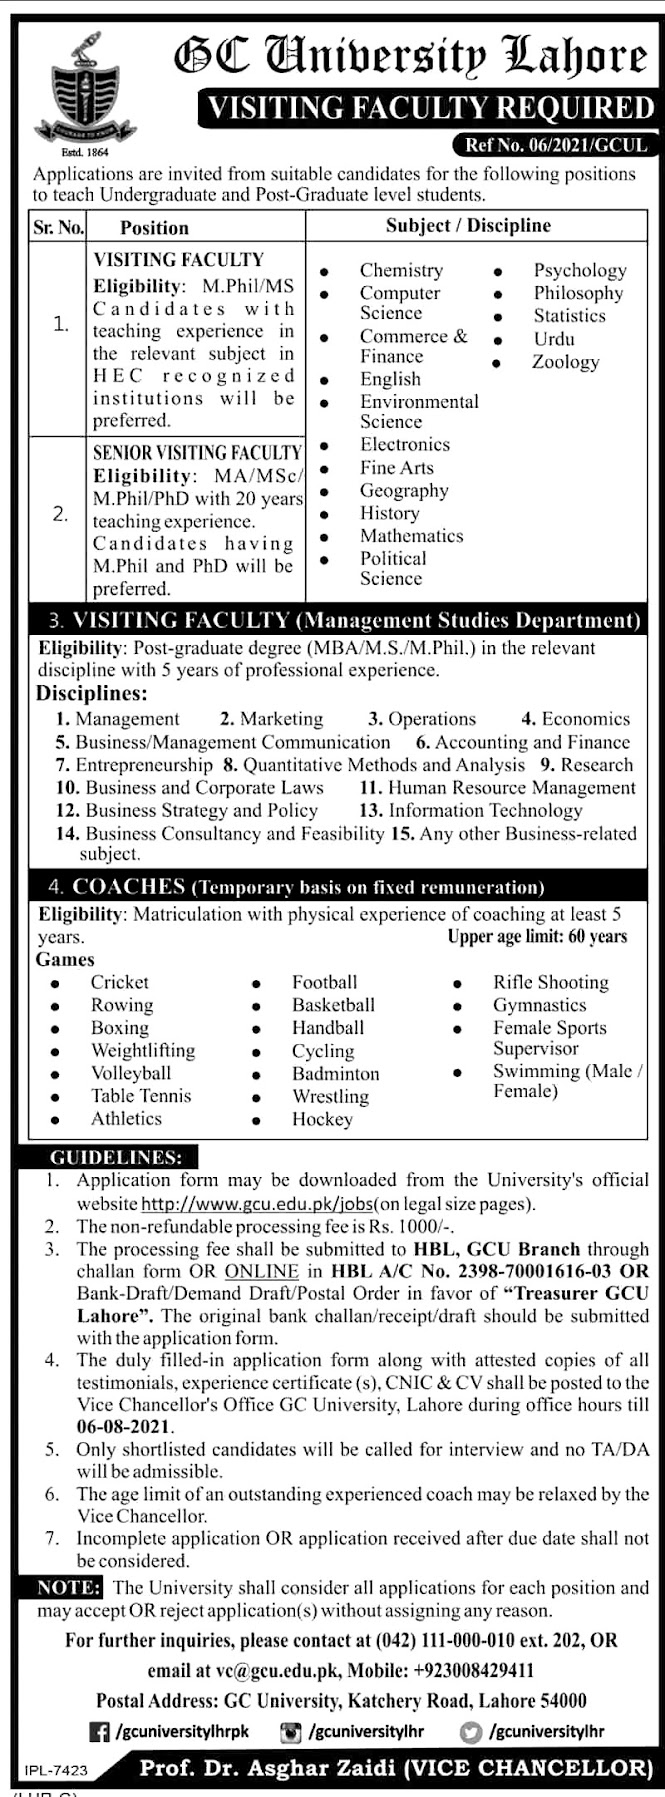 GC University Lahore Government Jobs in Punjab Latest - Download Application From